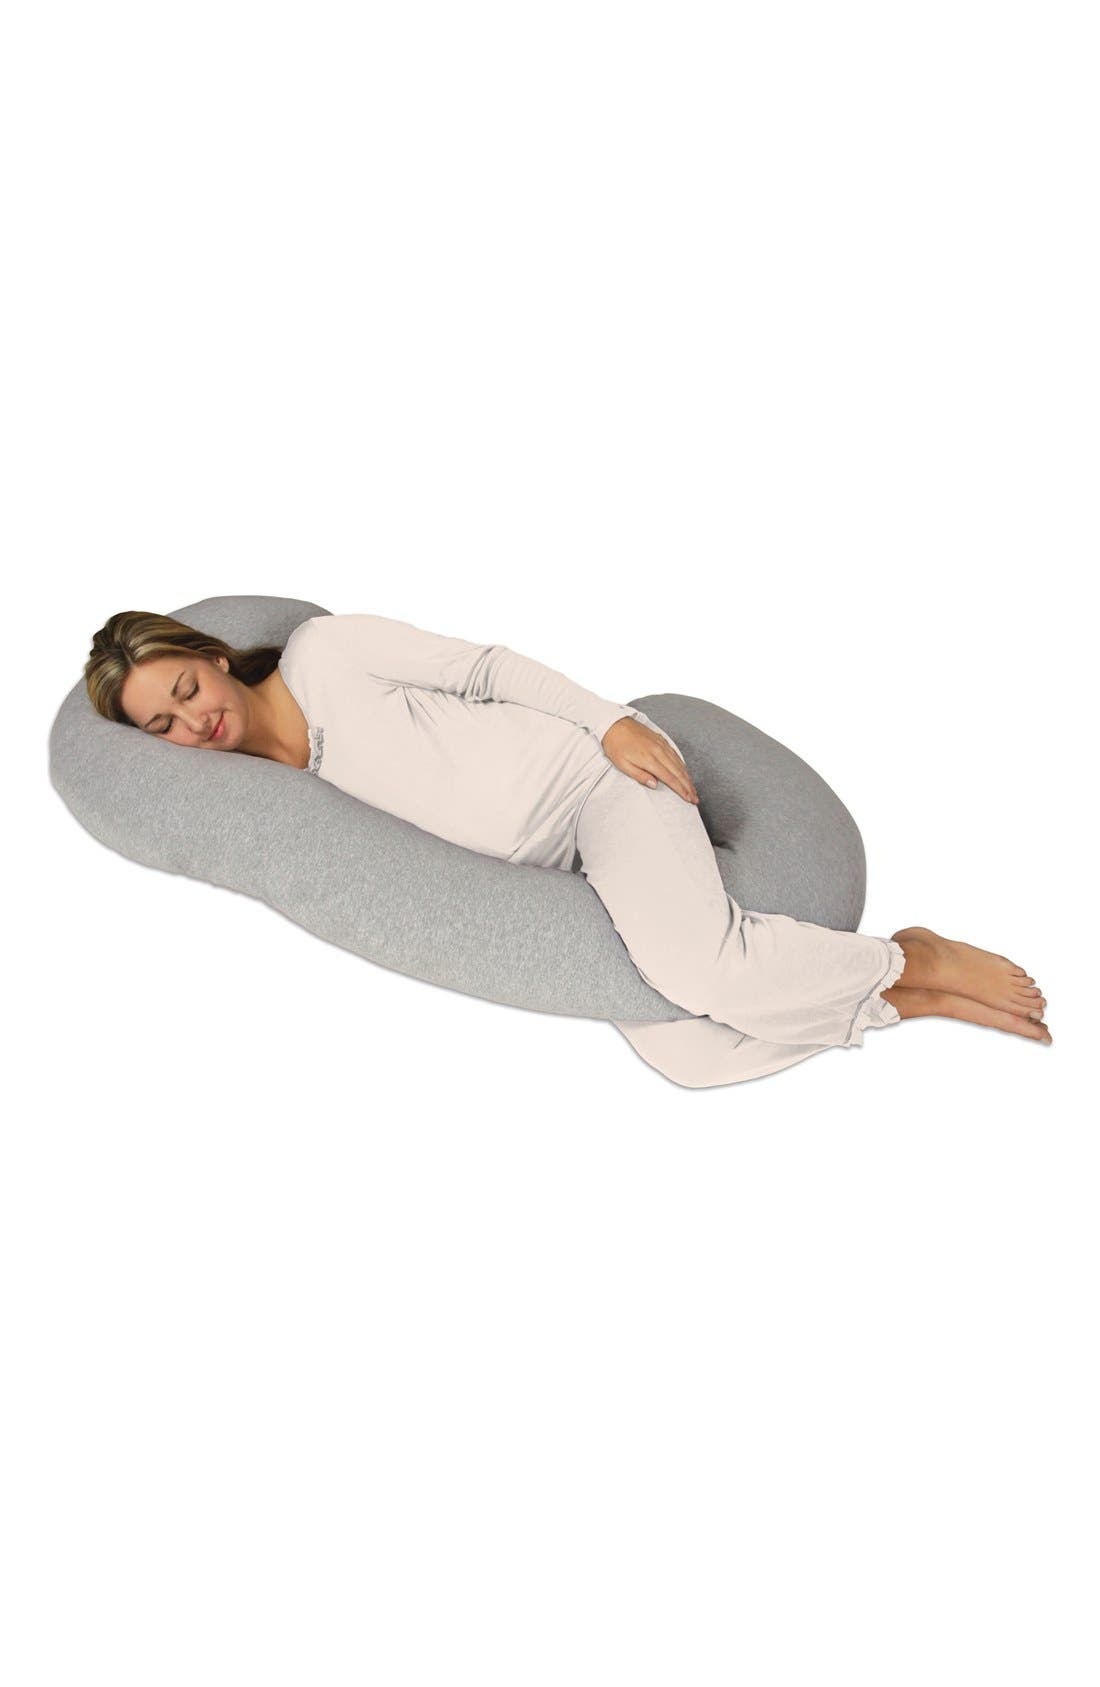 Snoogle Chic Full Body Pregnancy Support Pillow with Jersey Cover,                             Alternate thumbnail 2, color,                             HEATHER GREY